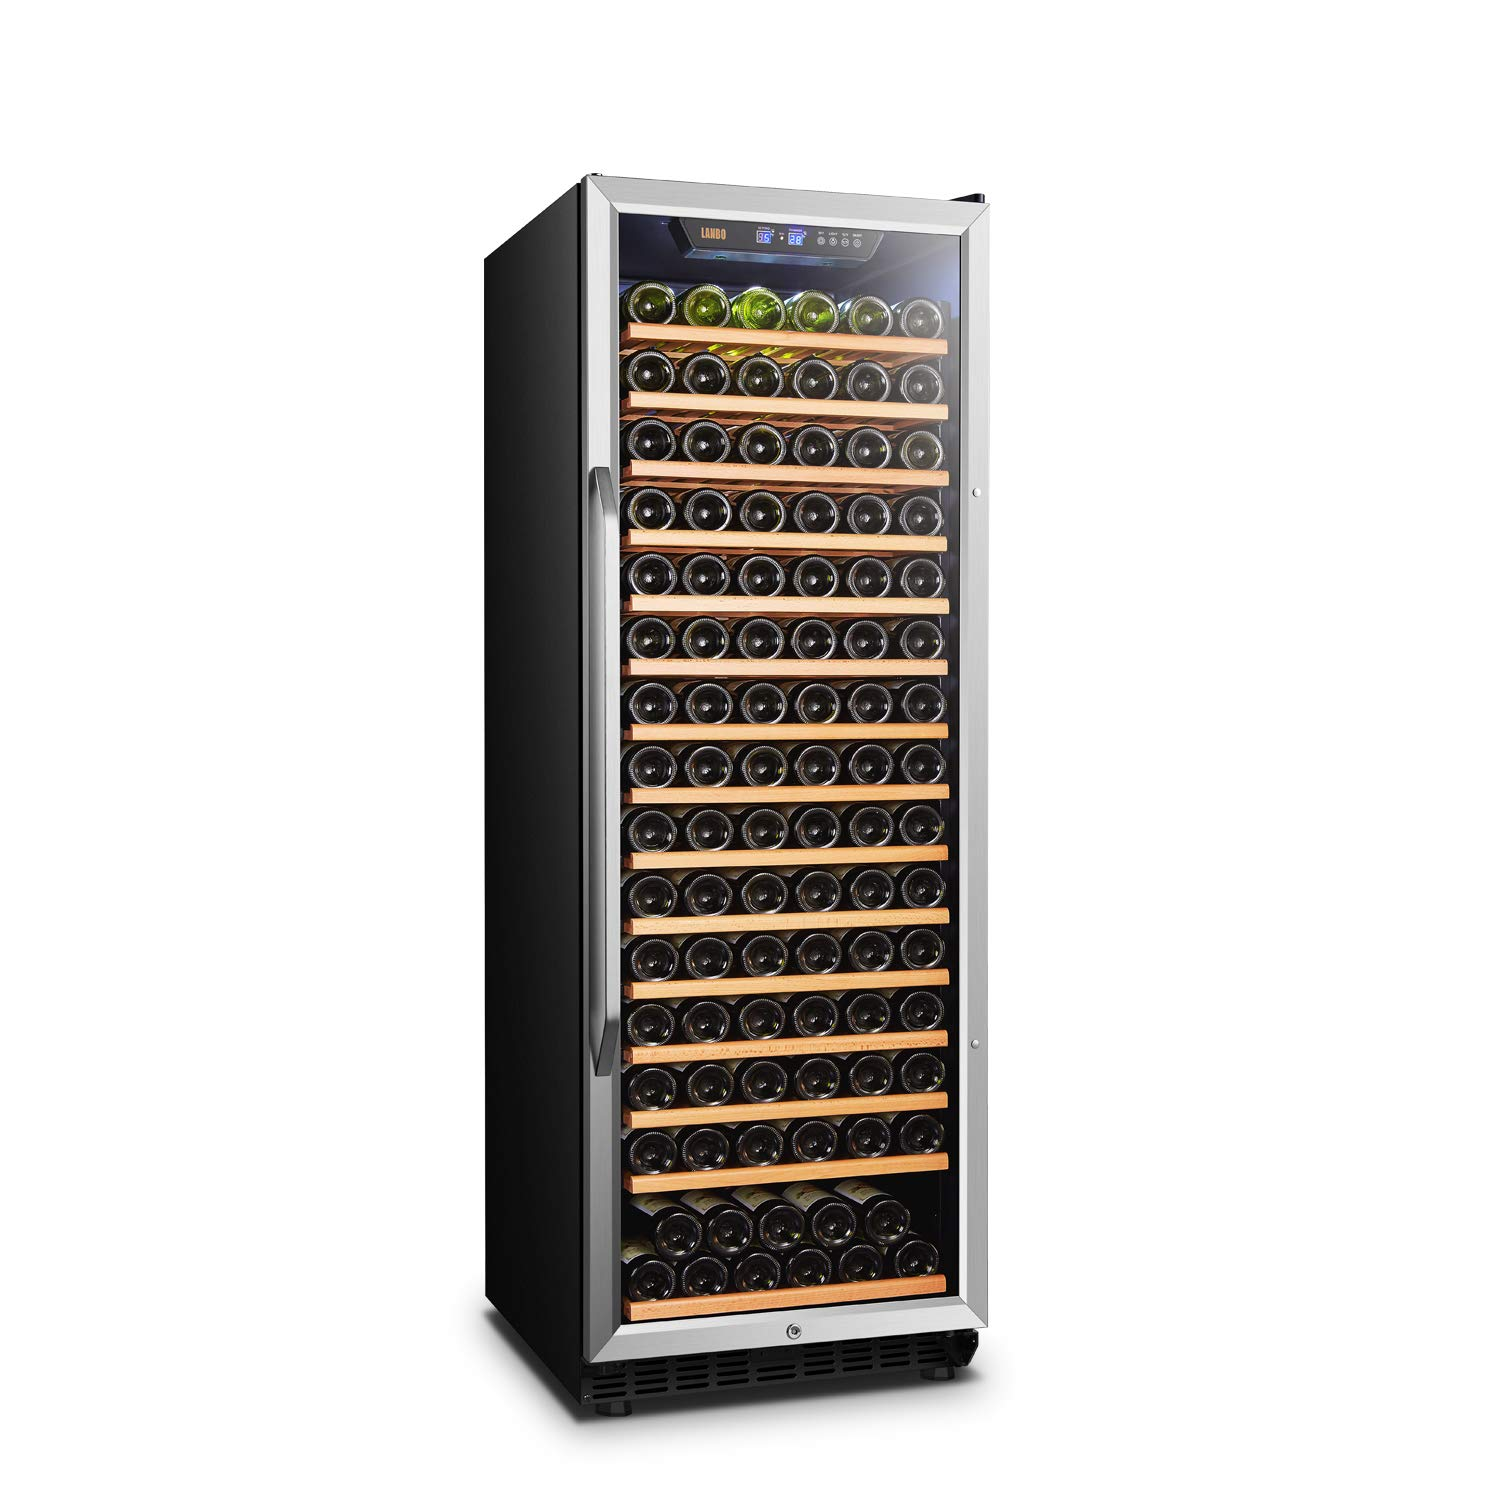 Lanbo Compressor Built-in Single Zone Wine Cooler with Safety Lock, 171 Bottles by Lanbo